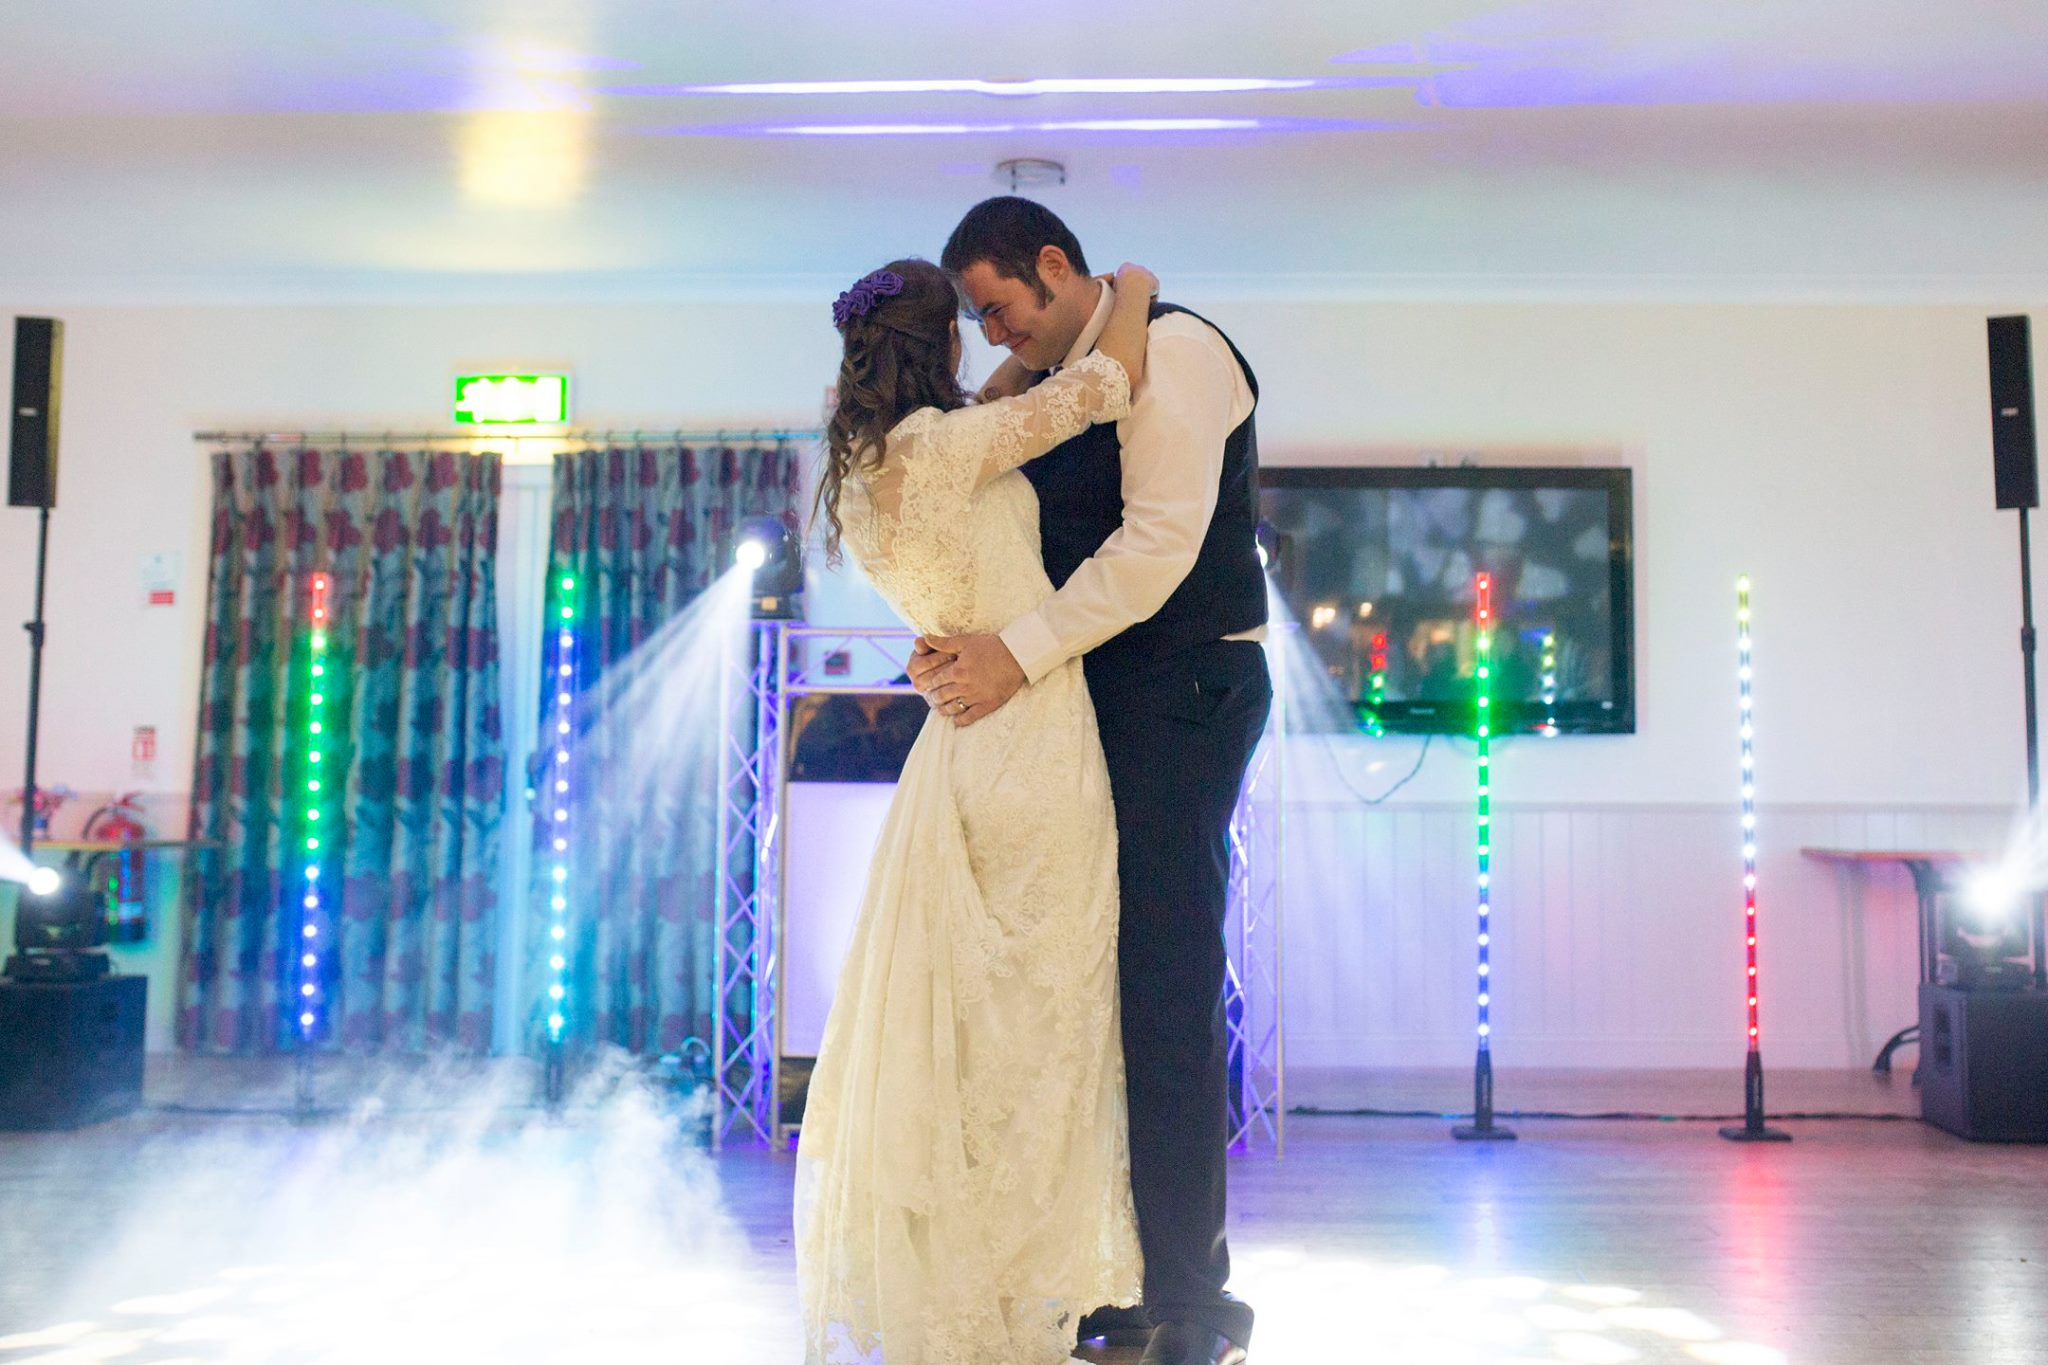 cornwall wedding disco dj photographer 48